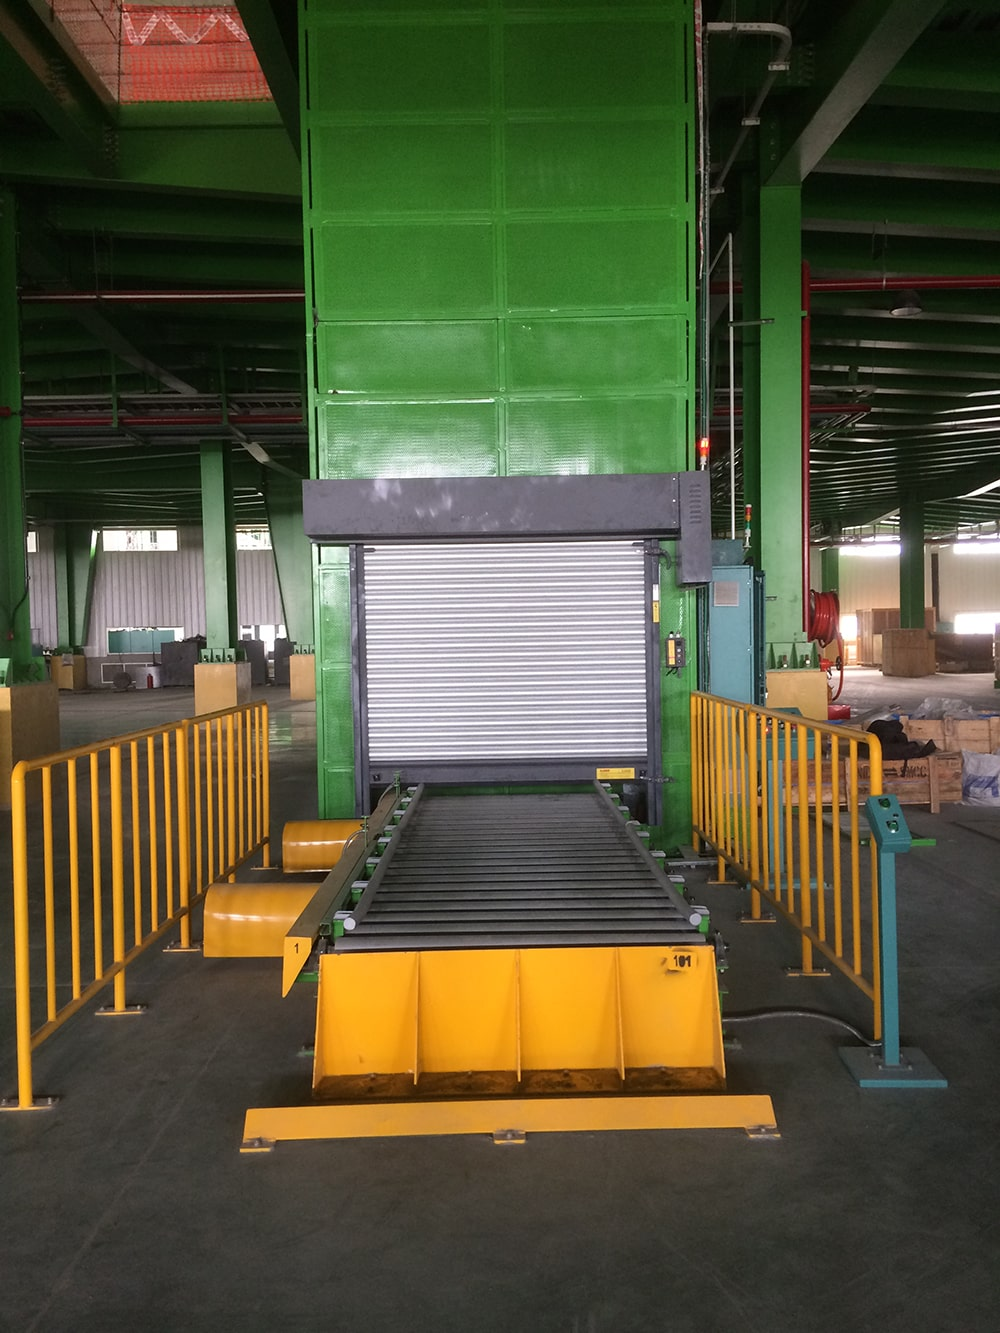 Vertical Receprocating Conveyor